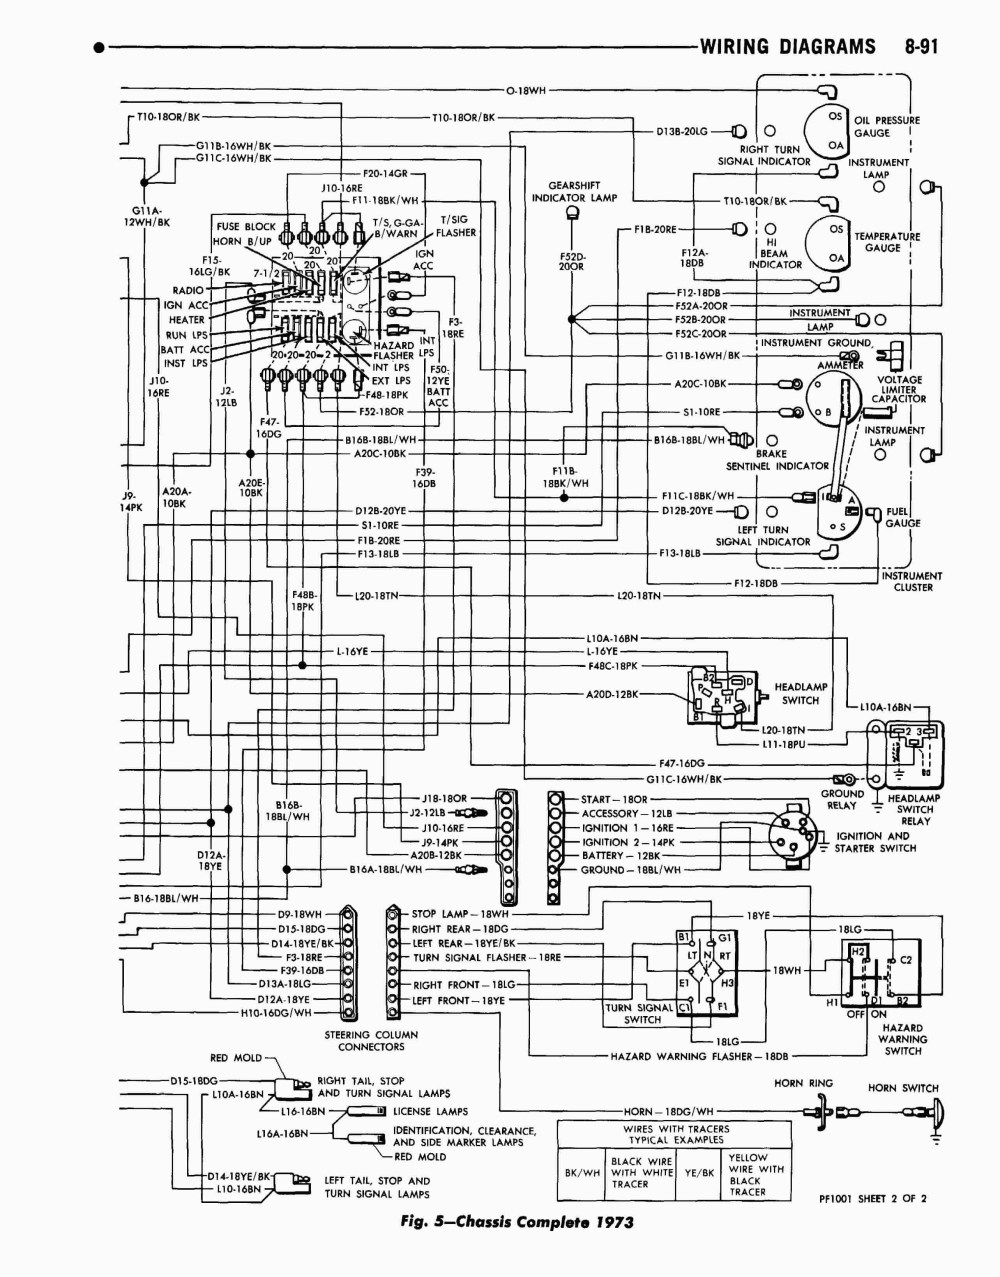 medium resolution of 2002 wildcat rv wiring diagram wiring diagram portal rh 4 19 3 kaminari music de forest river schematics forest river trailer wiring schematics